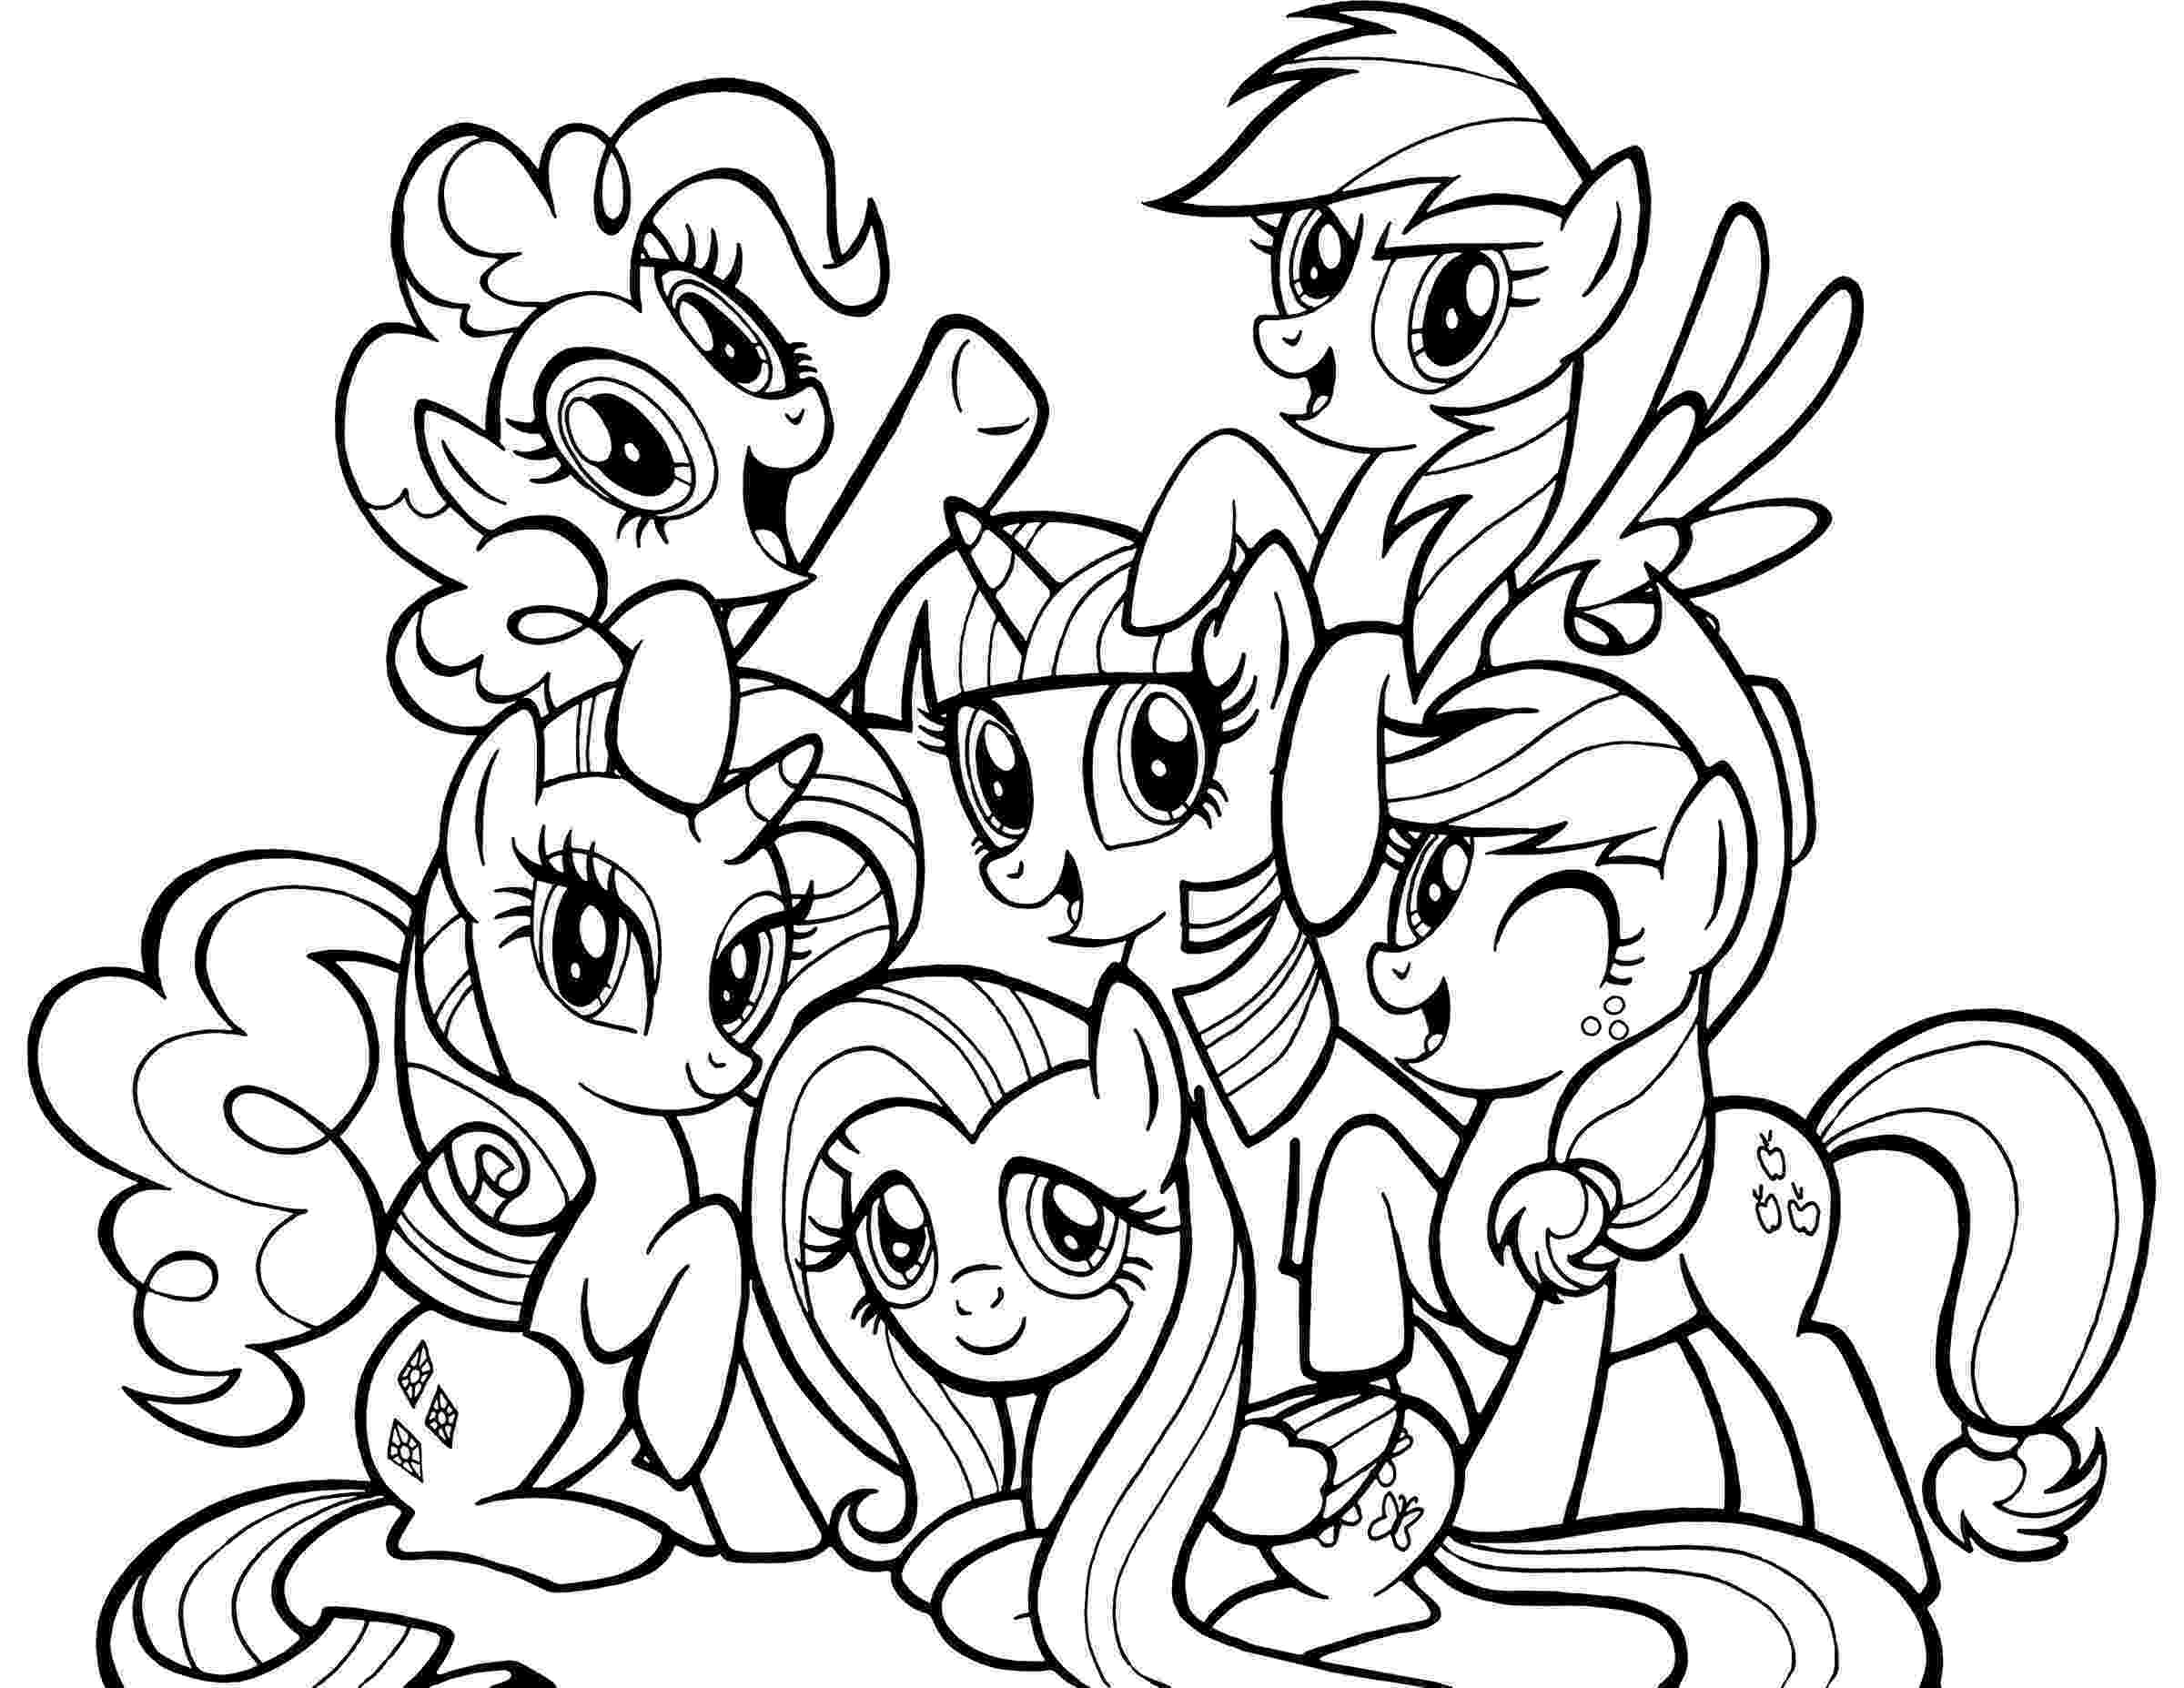 pony coloring pages to print 16 best my little pony coloring pages images on pinterest print to pages pony coloring